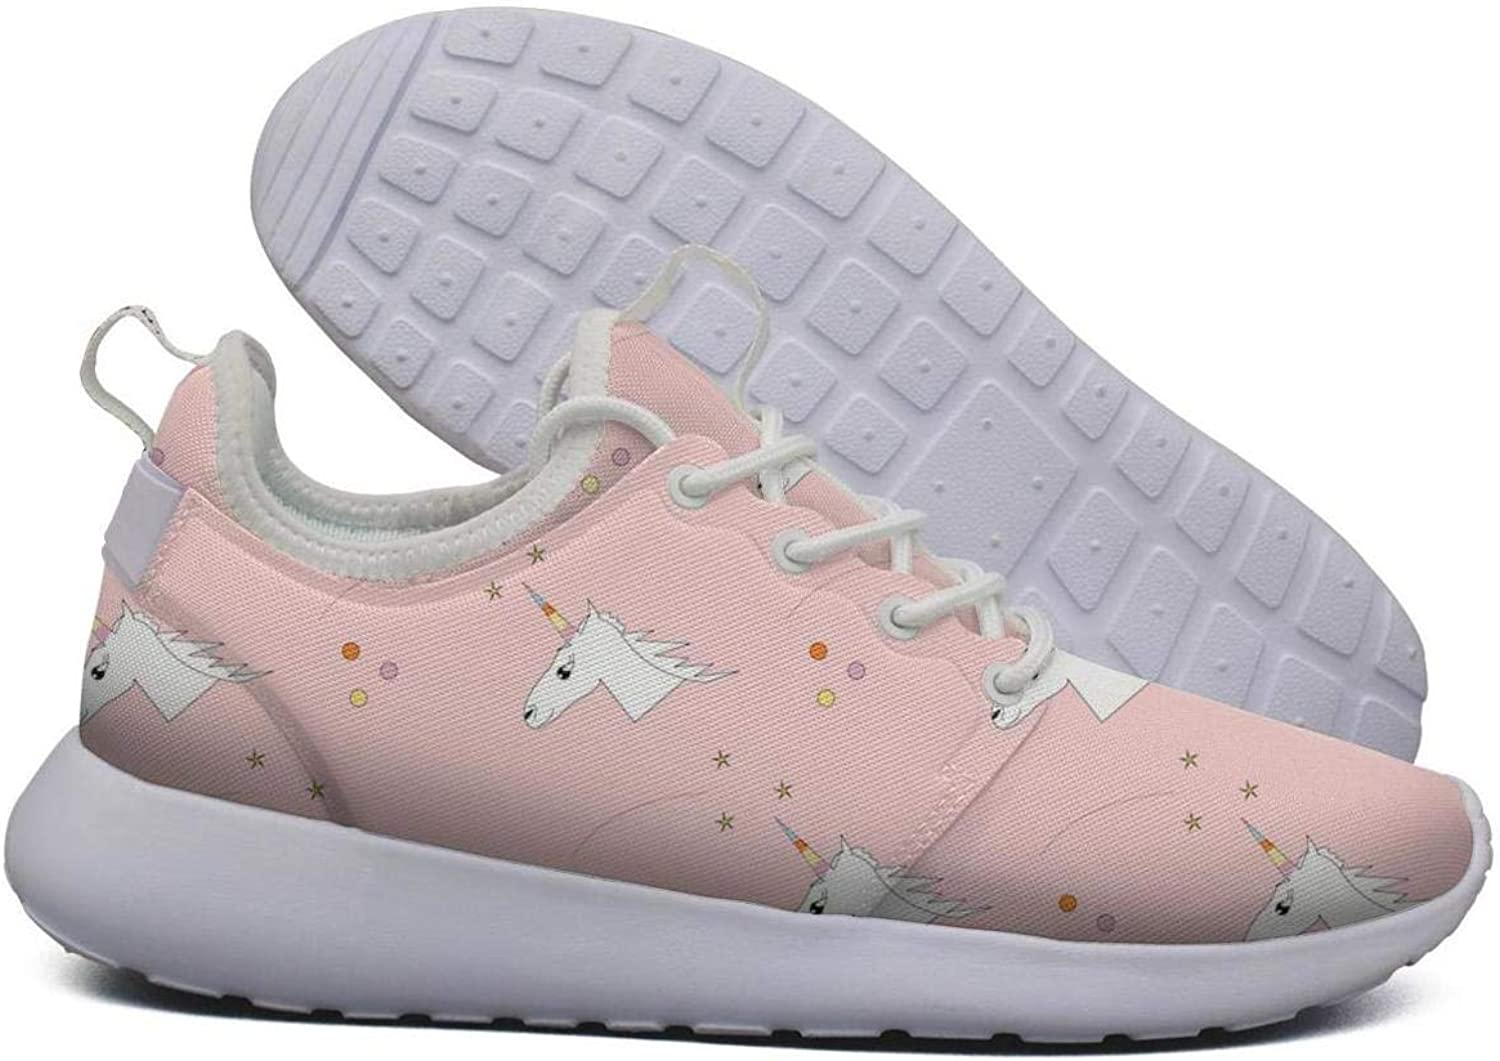 Funny Unicorns White Girls Sneakers for Women Spring Quick-Drying Walking shoes